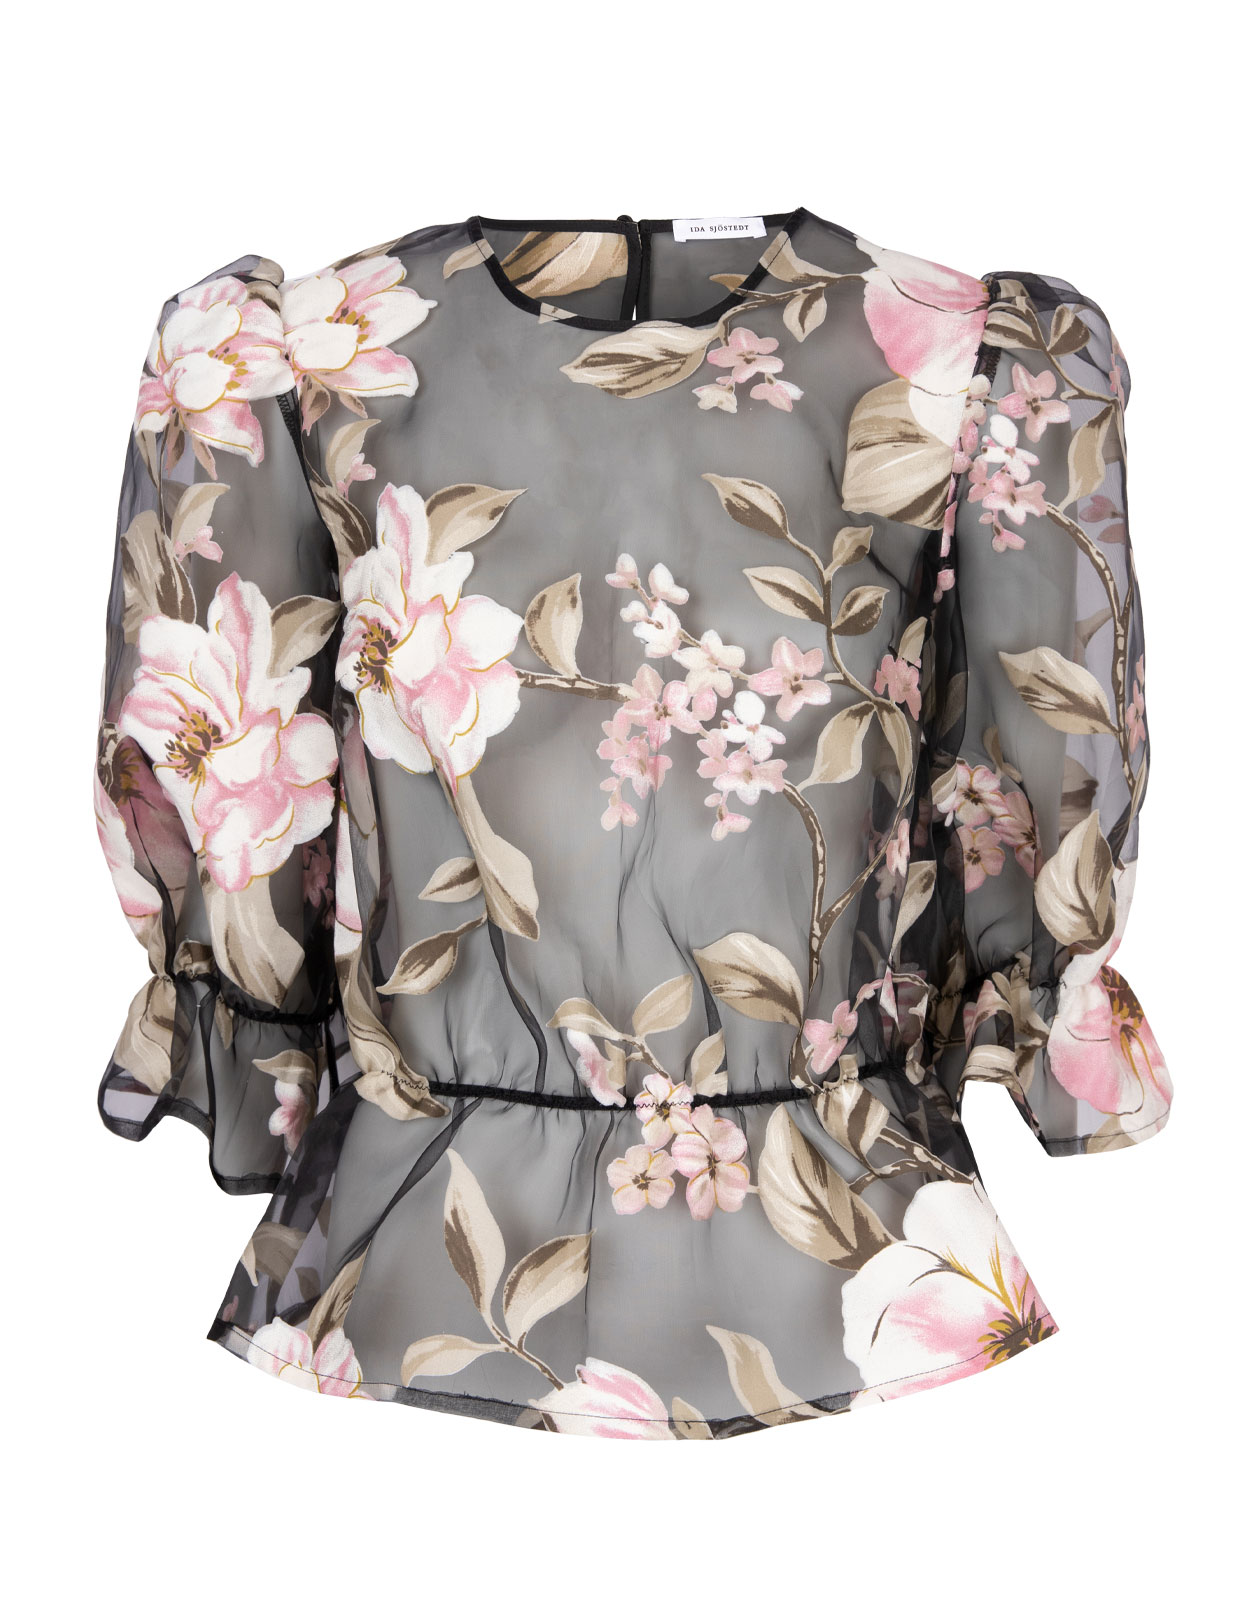 Orlando Top Puffy Sleeved Organza Floral Black